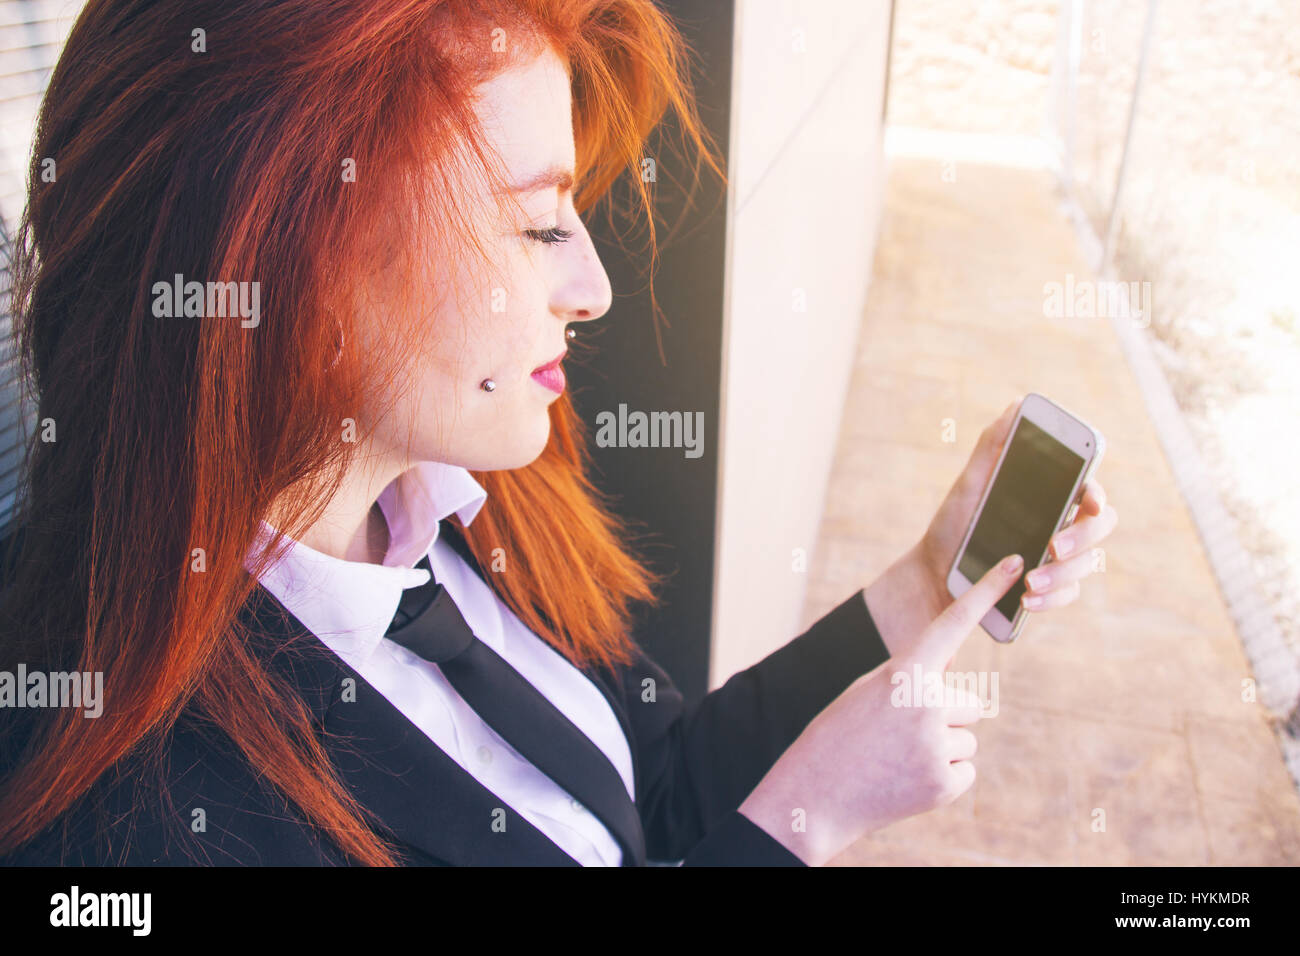 Young redhead business woman working with her smartphone - Stock Image